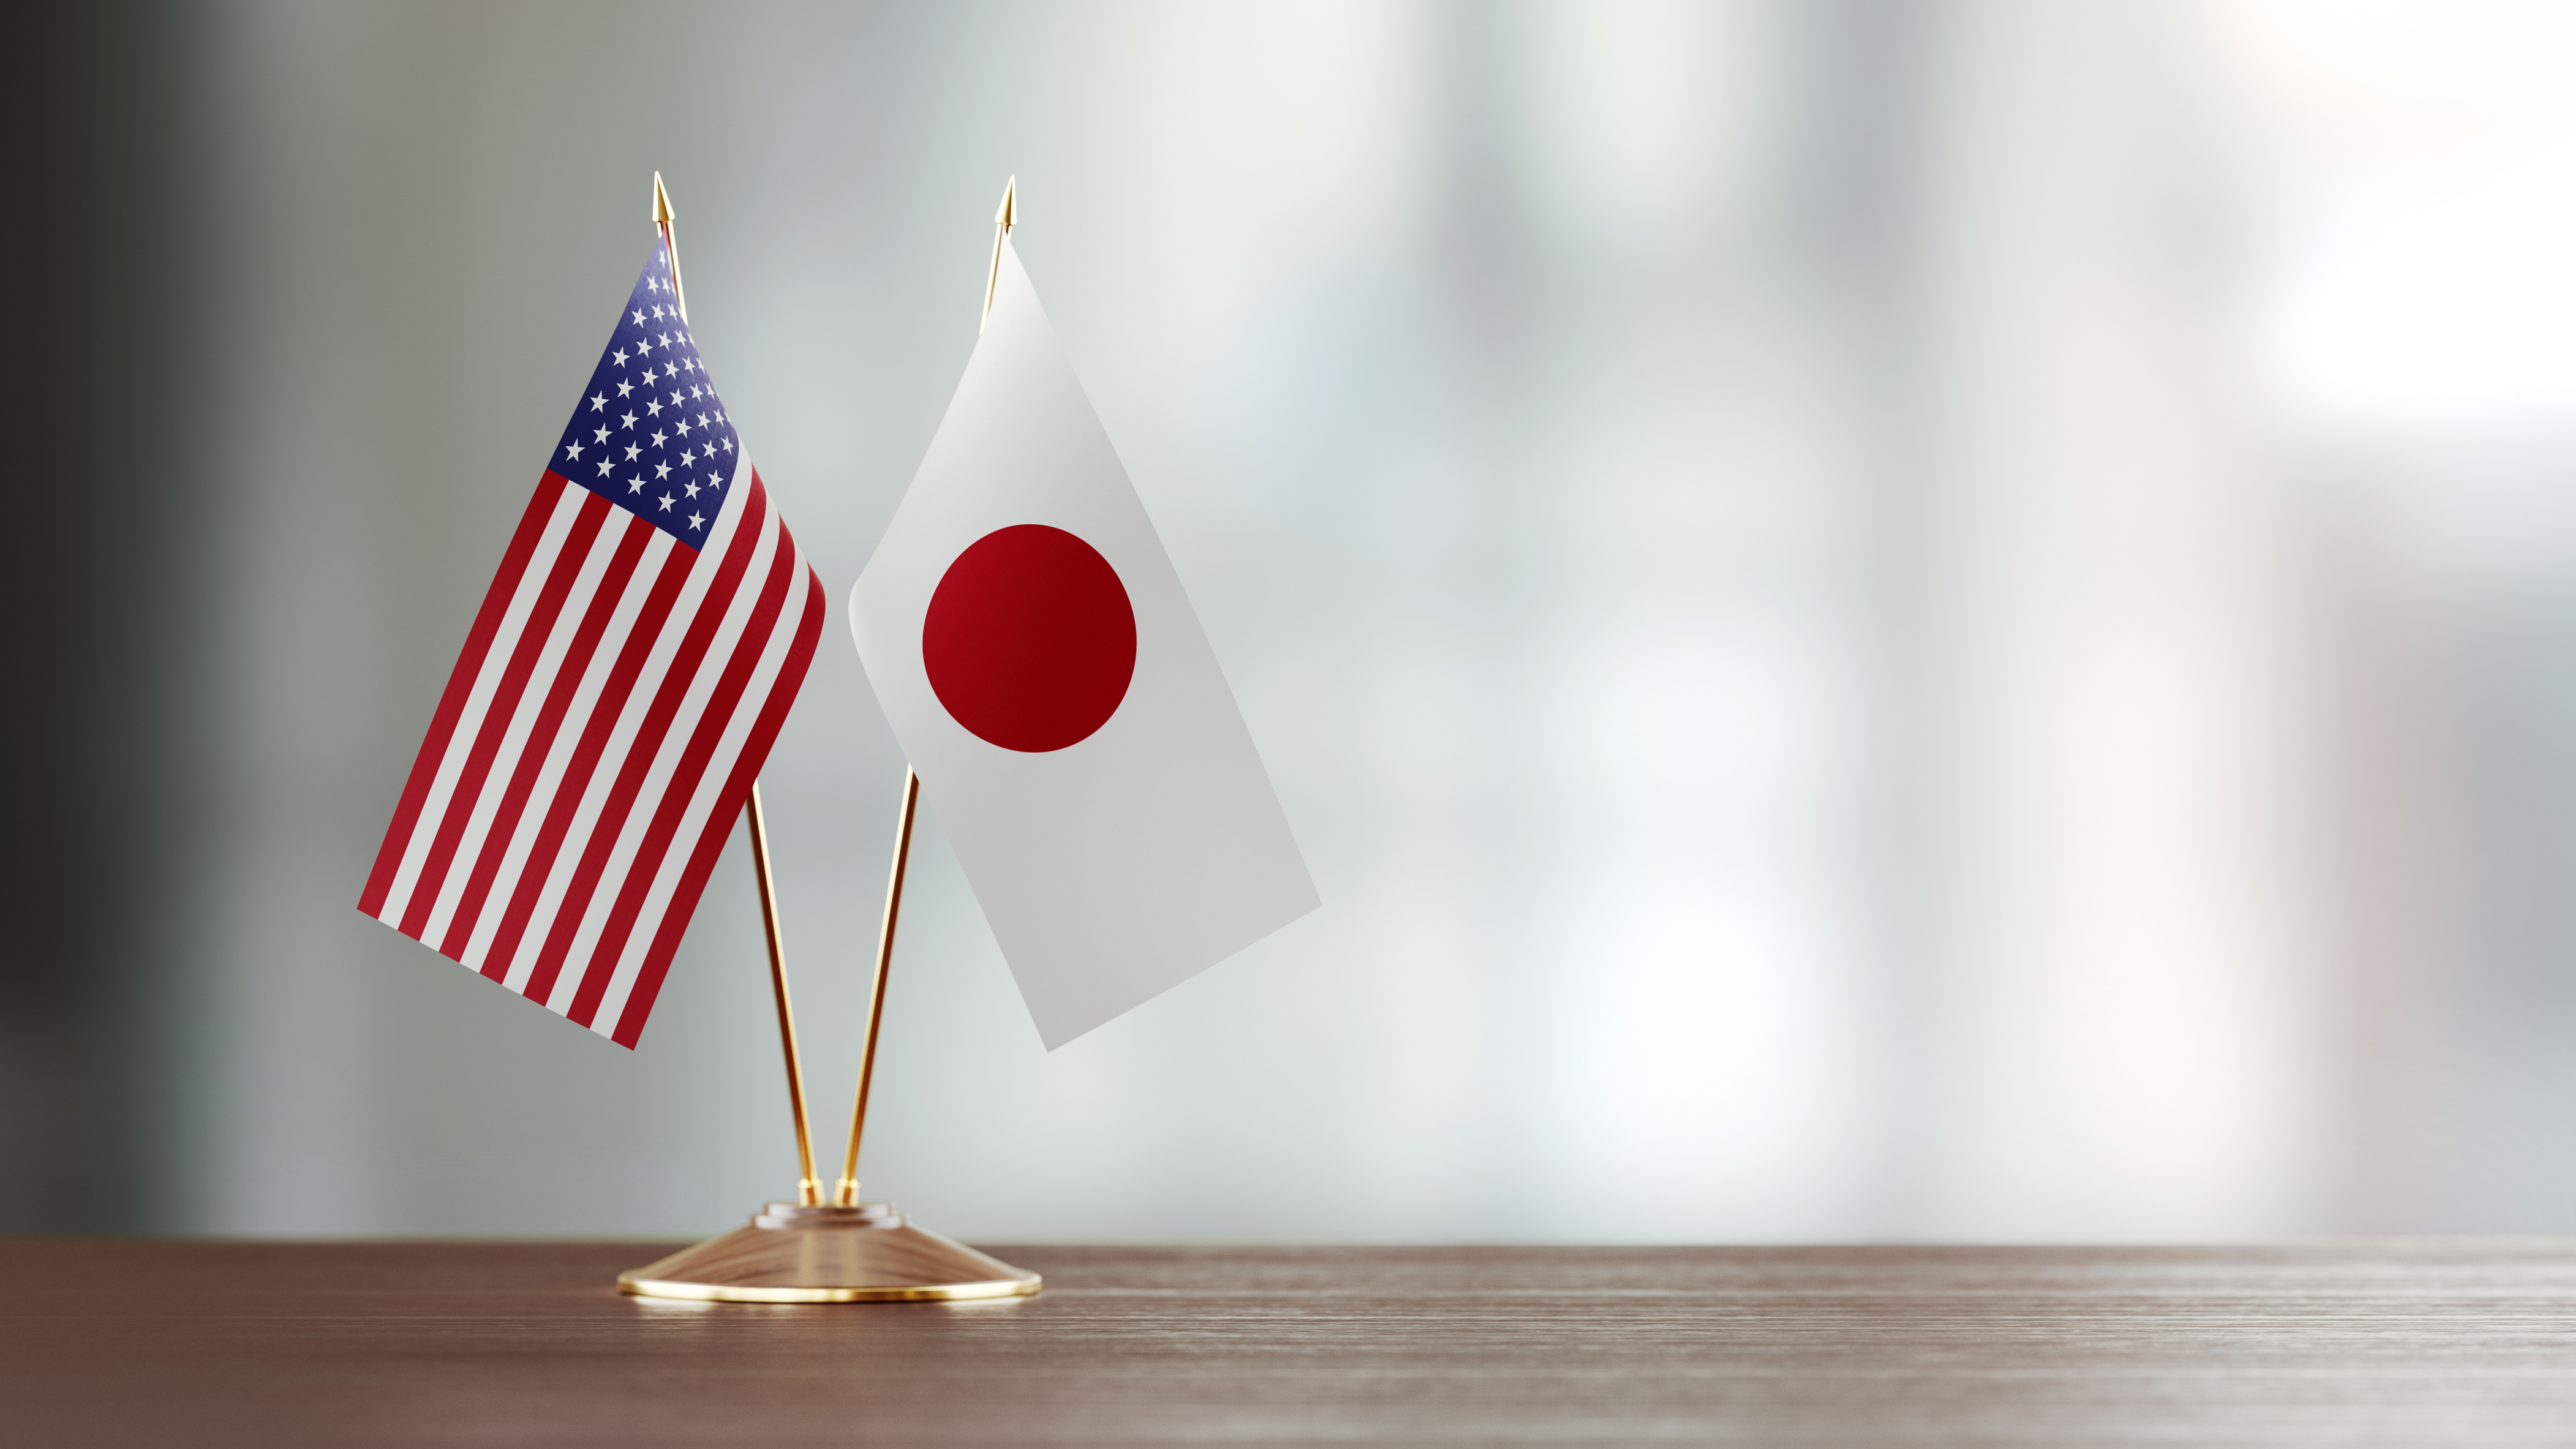 US-Japan flags